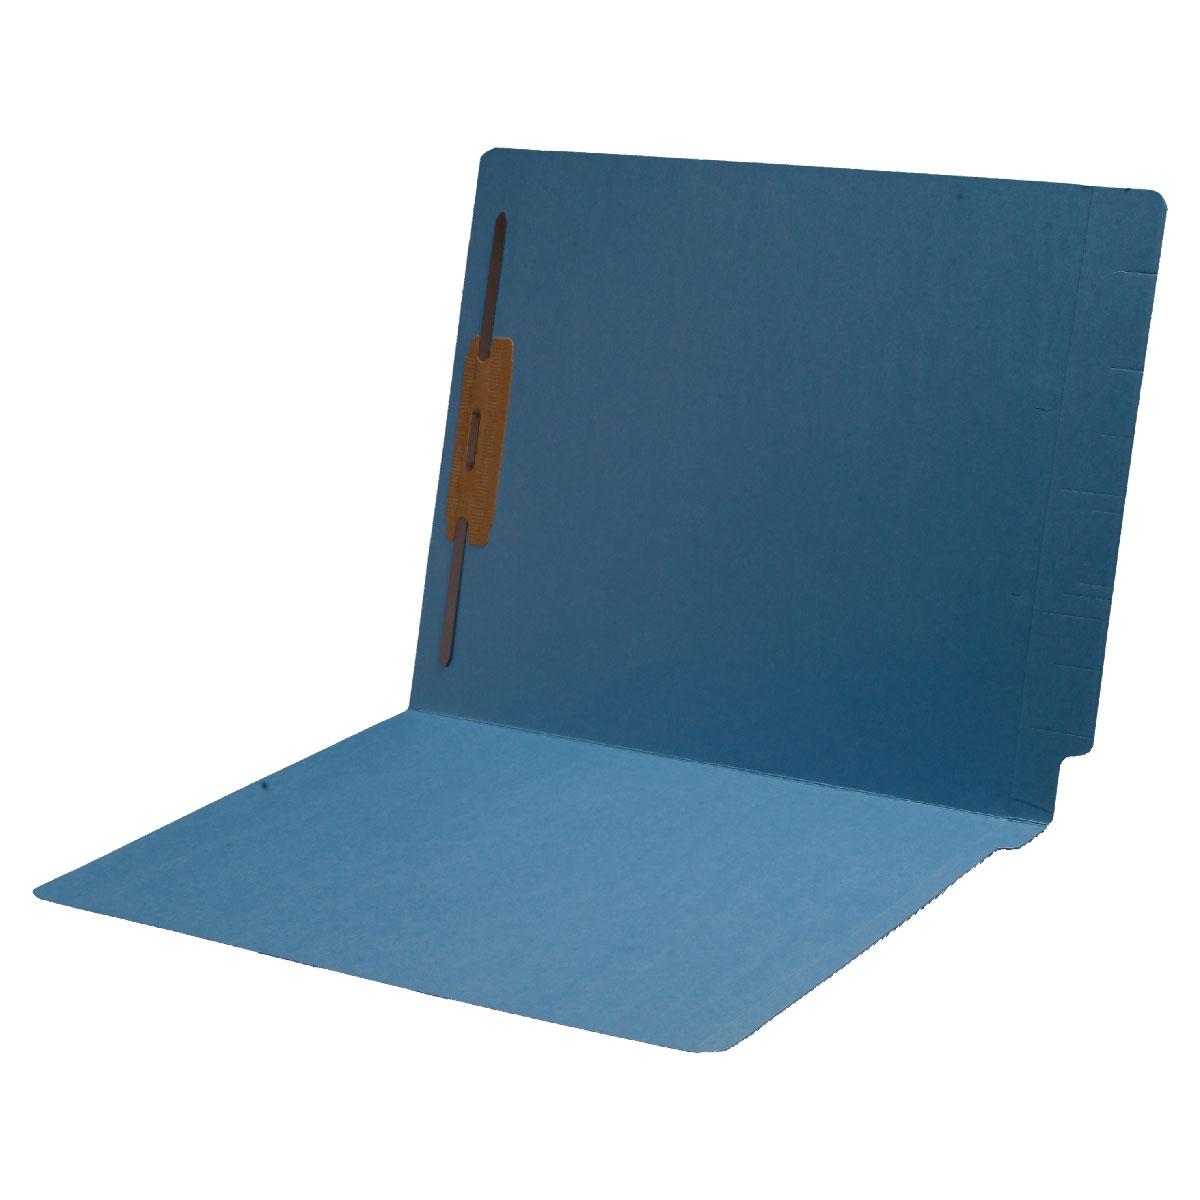 S-1601 - 14 pt Color Folders, Full Cut 2-Ply End Tab, Letter Size, Fastener Pos #1 (Box of 50)